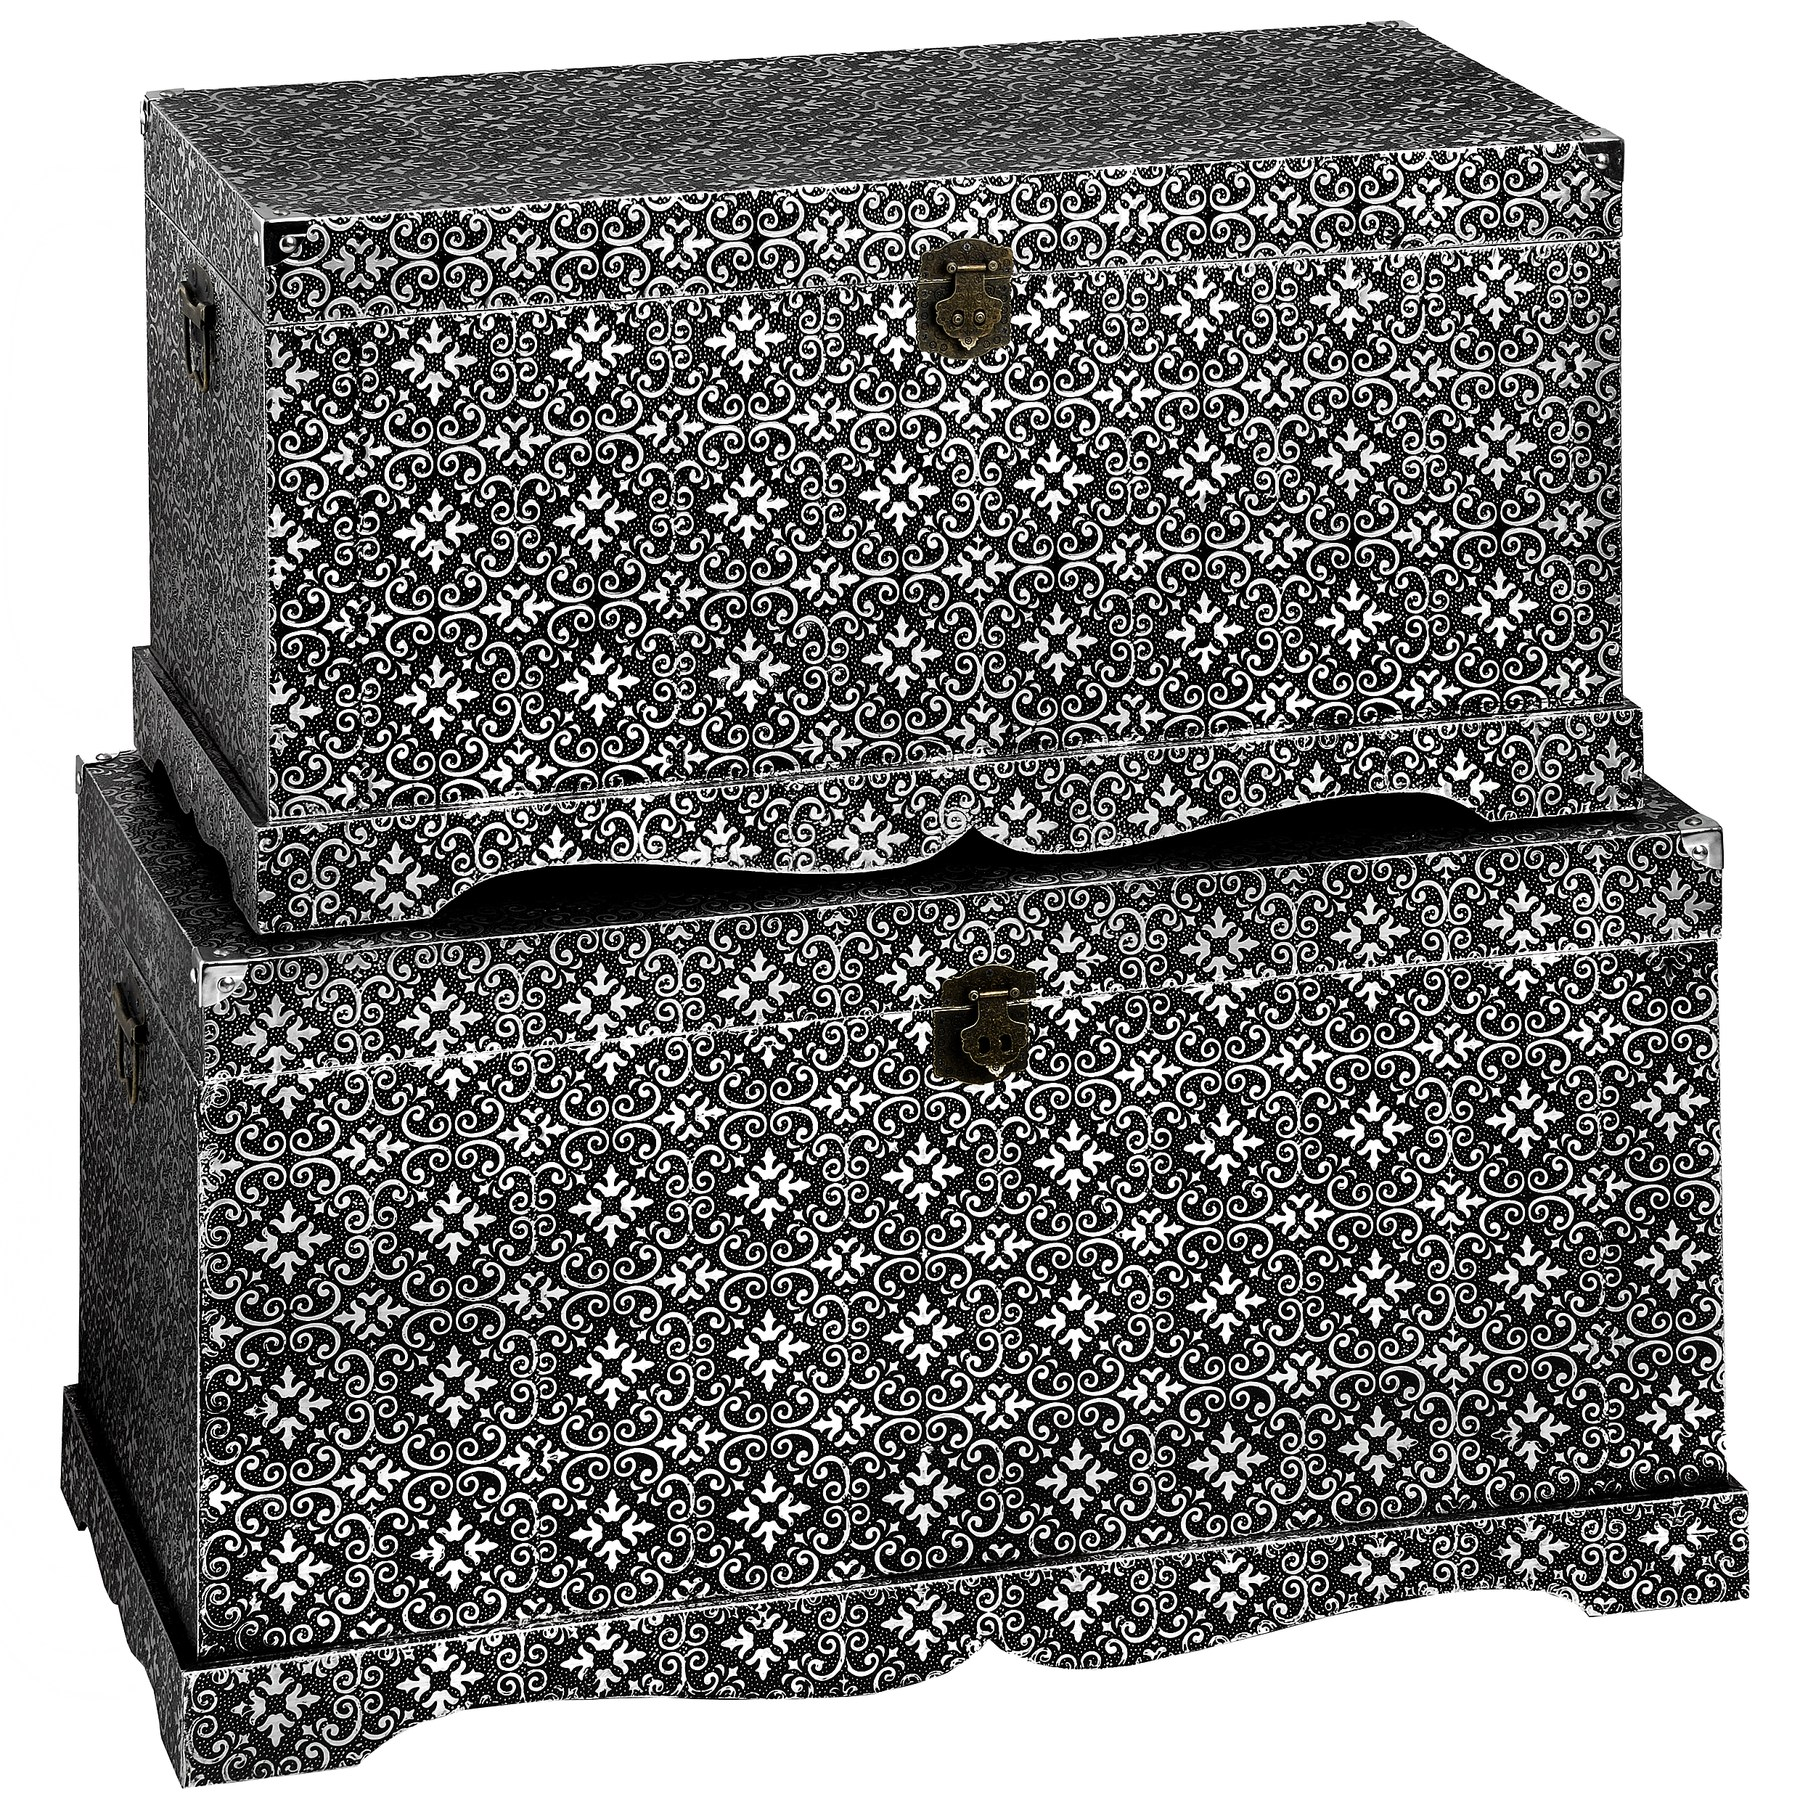 Marrakech Range - Set of 2 Blanket Boxes